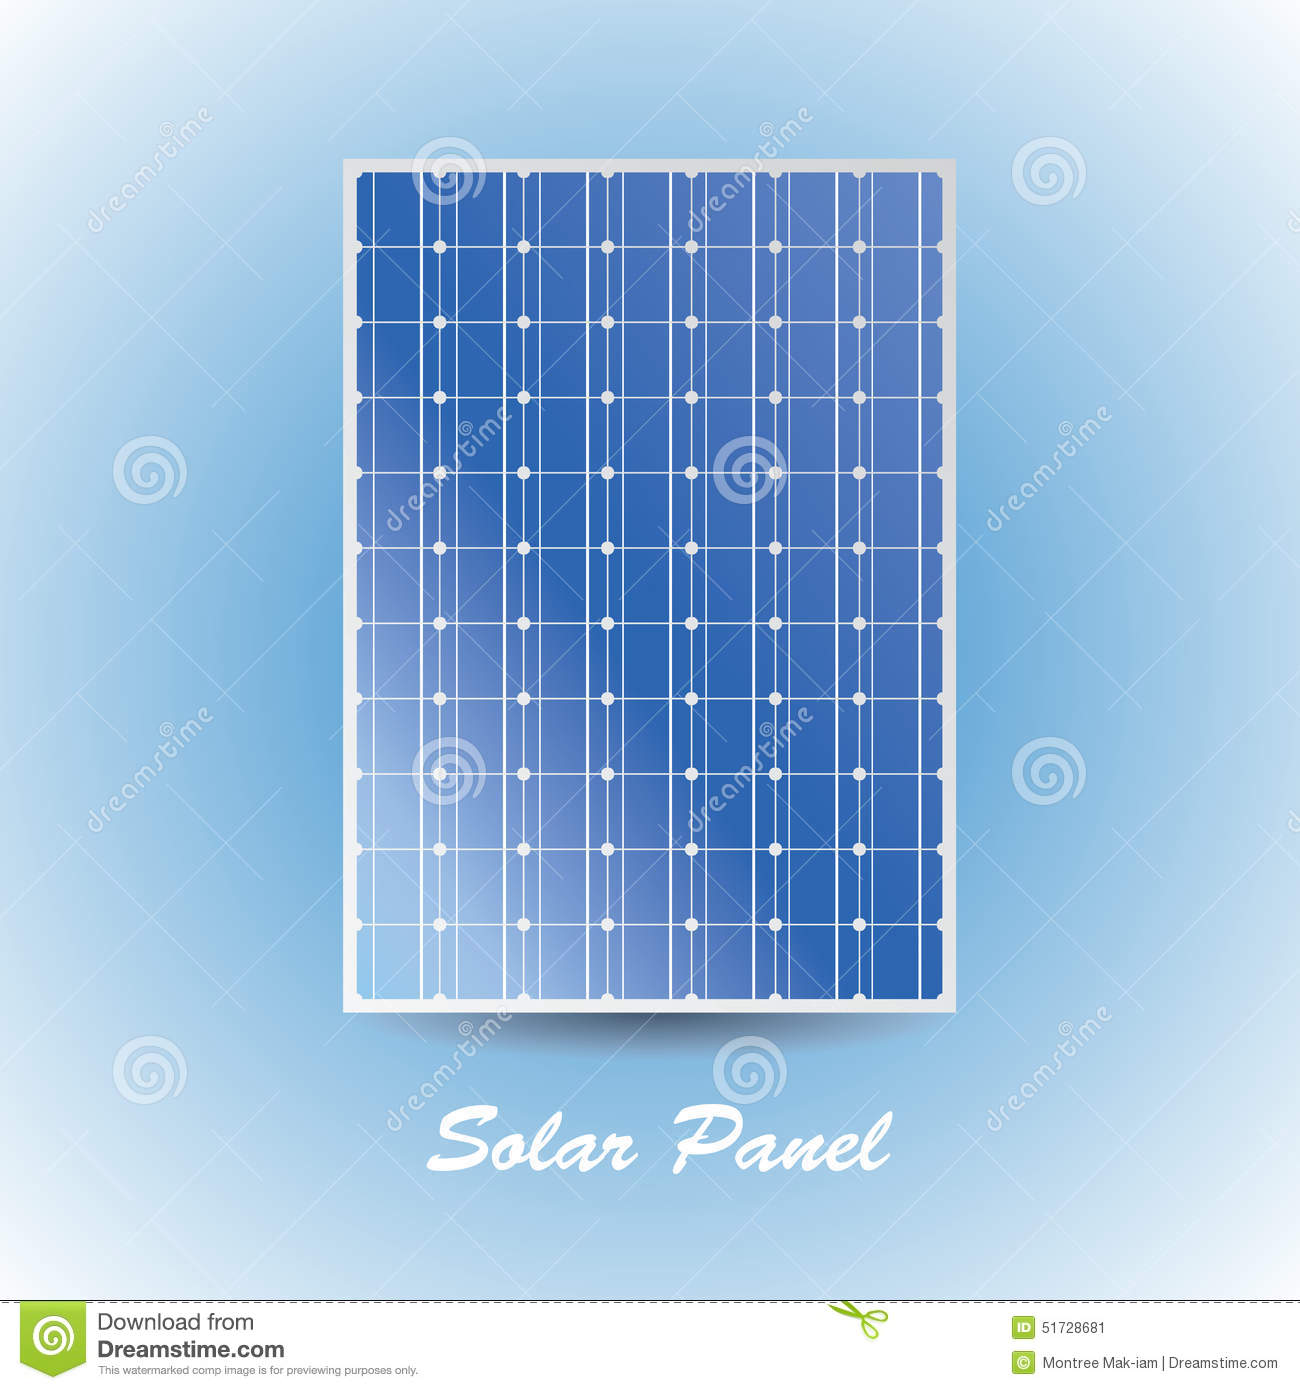 Stock image solar panel image 51728681 for Solar panel layout tool